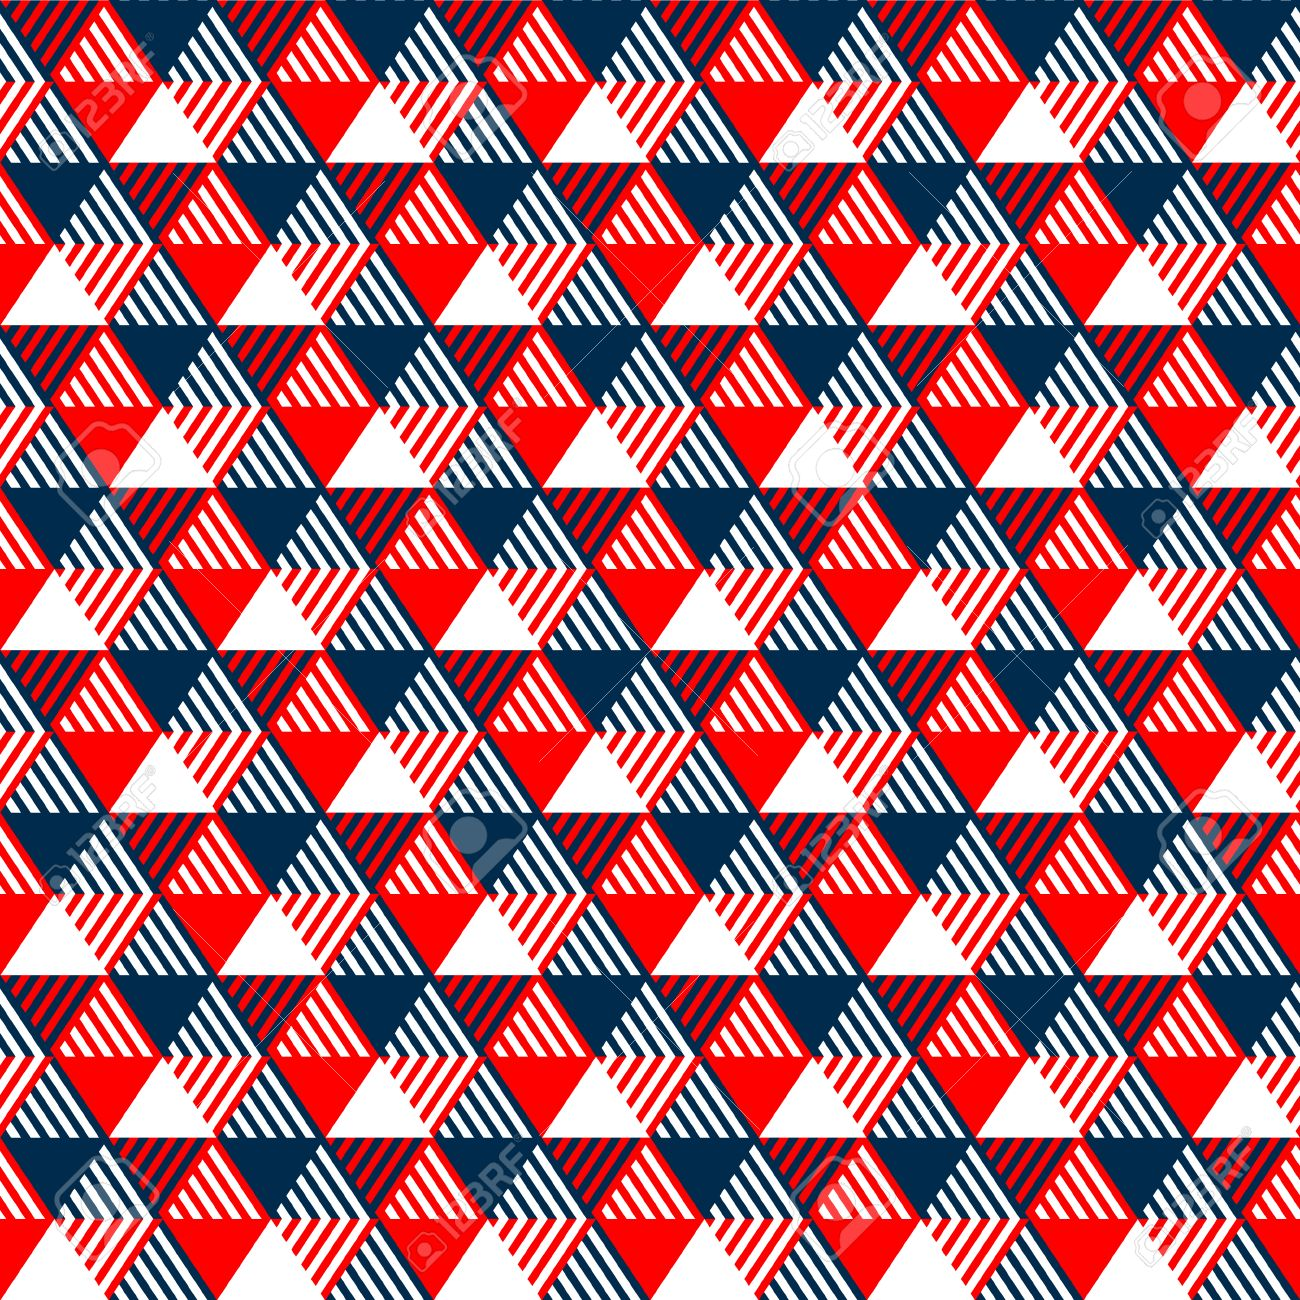 Triangles geometric seamless pattern in navy blue red and white, vector - 30674630